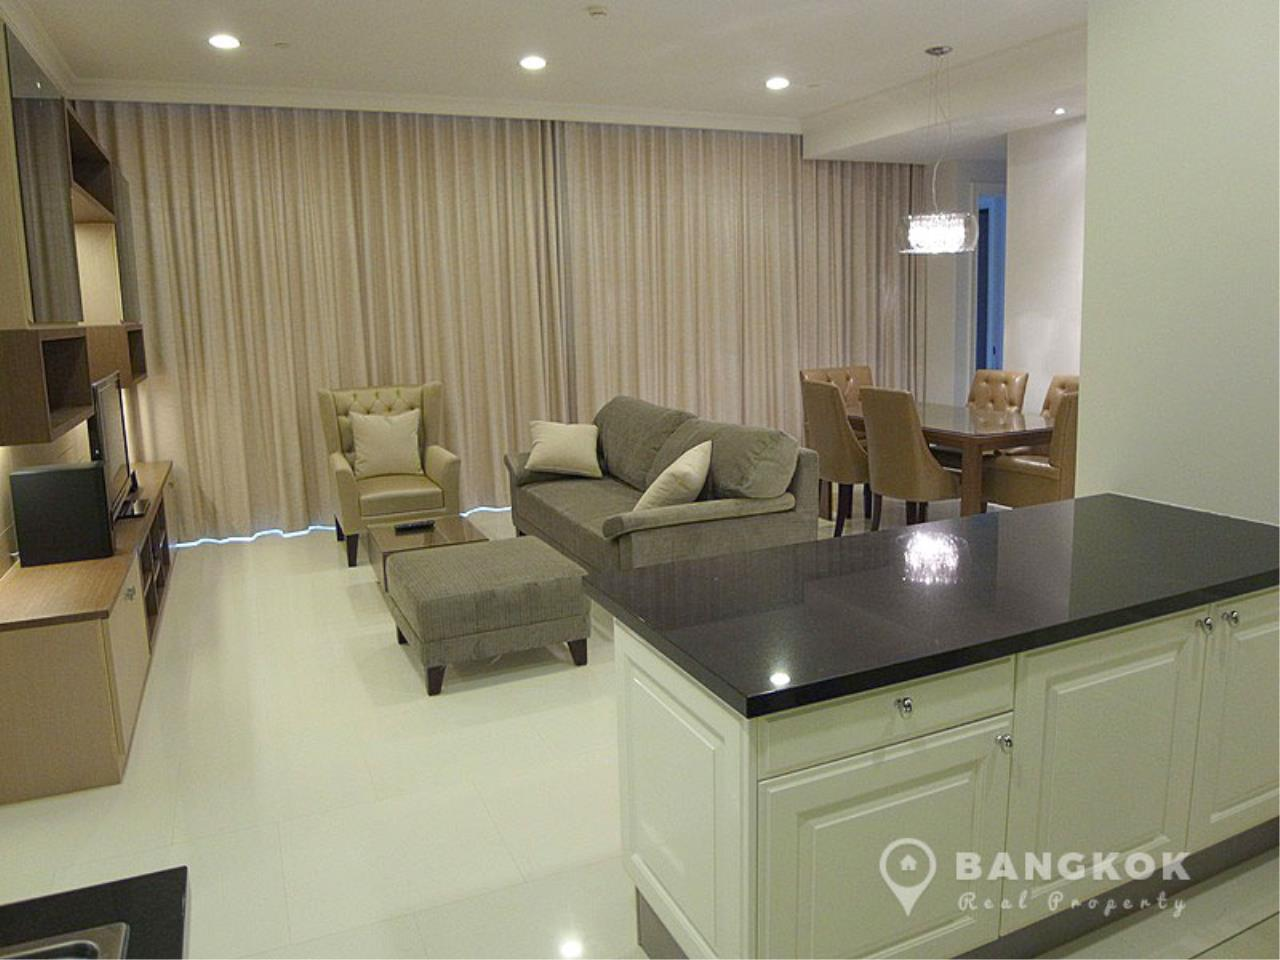 Bangkok Real Property Agency's Royce Private Residences | Luxury Modern 3 Bed Condo in Sukhumvit 2